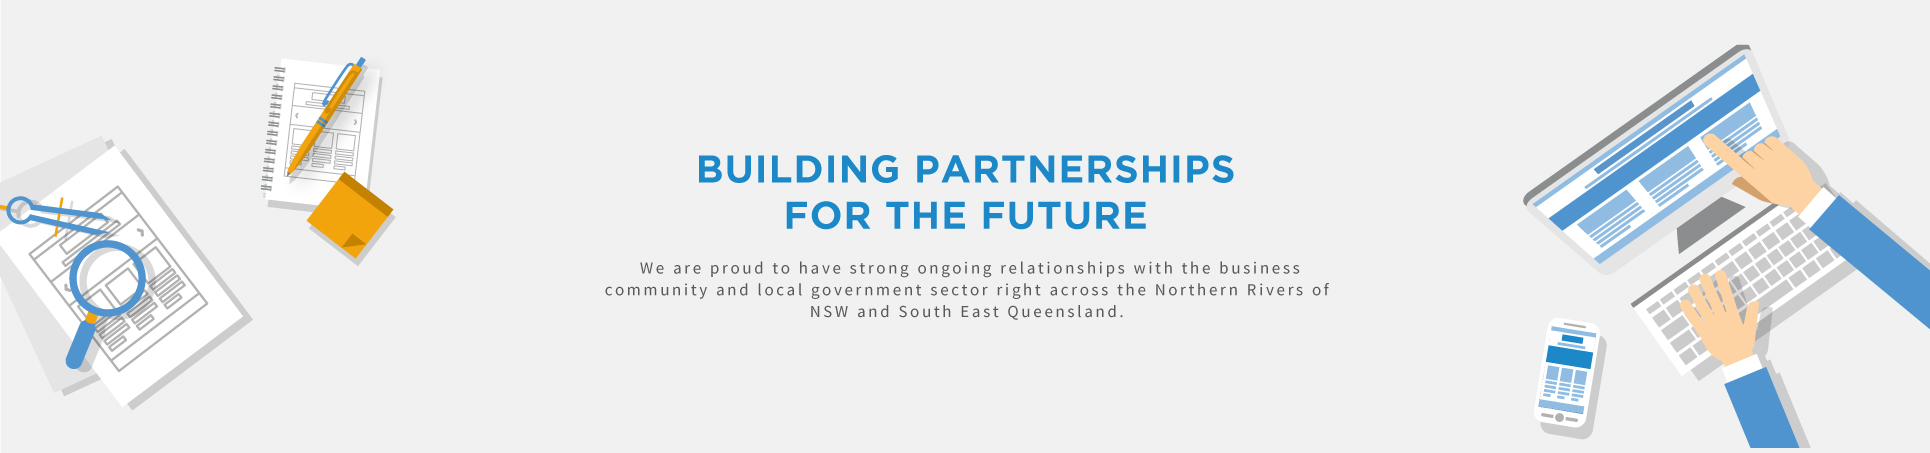 Building partnerships for the future